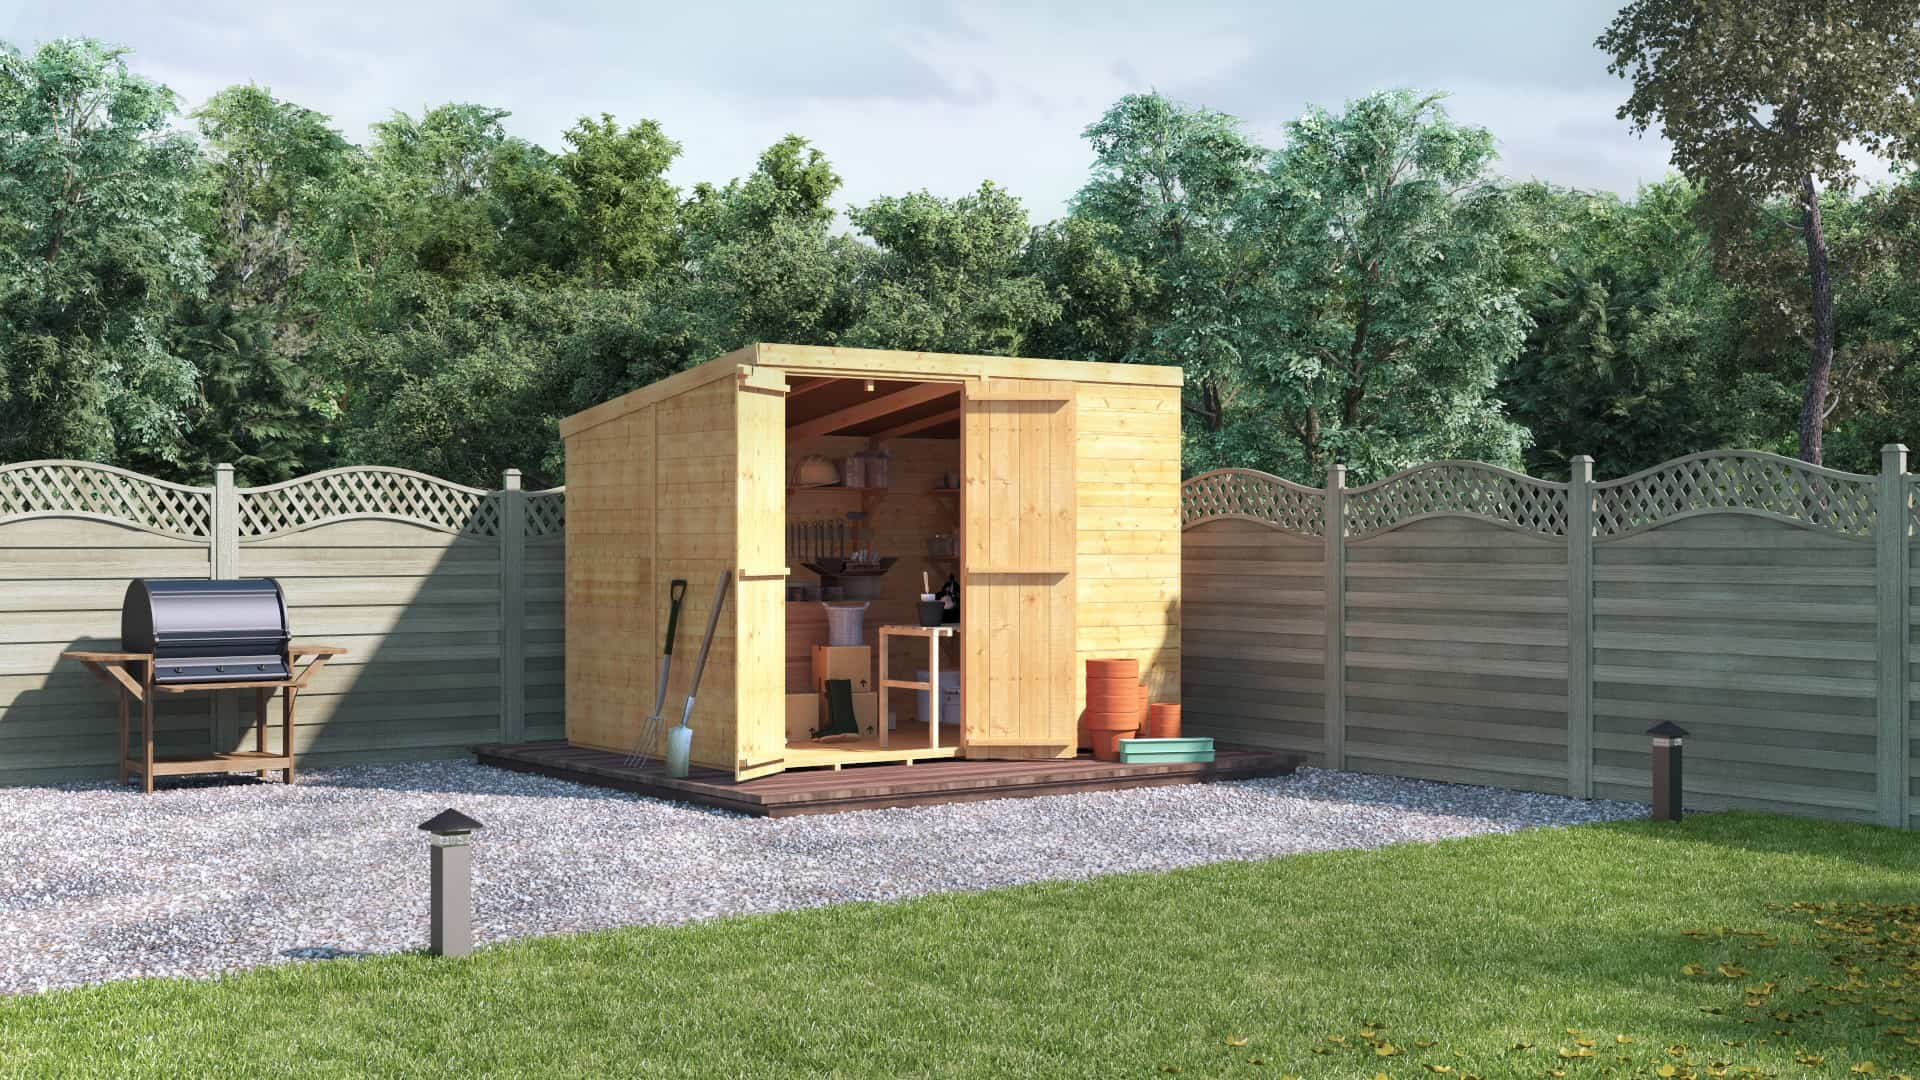 opened-doored Windowless pent tongue and groove timber shed on gravel against a fence boundary backed by trees